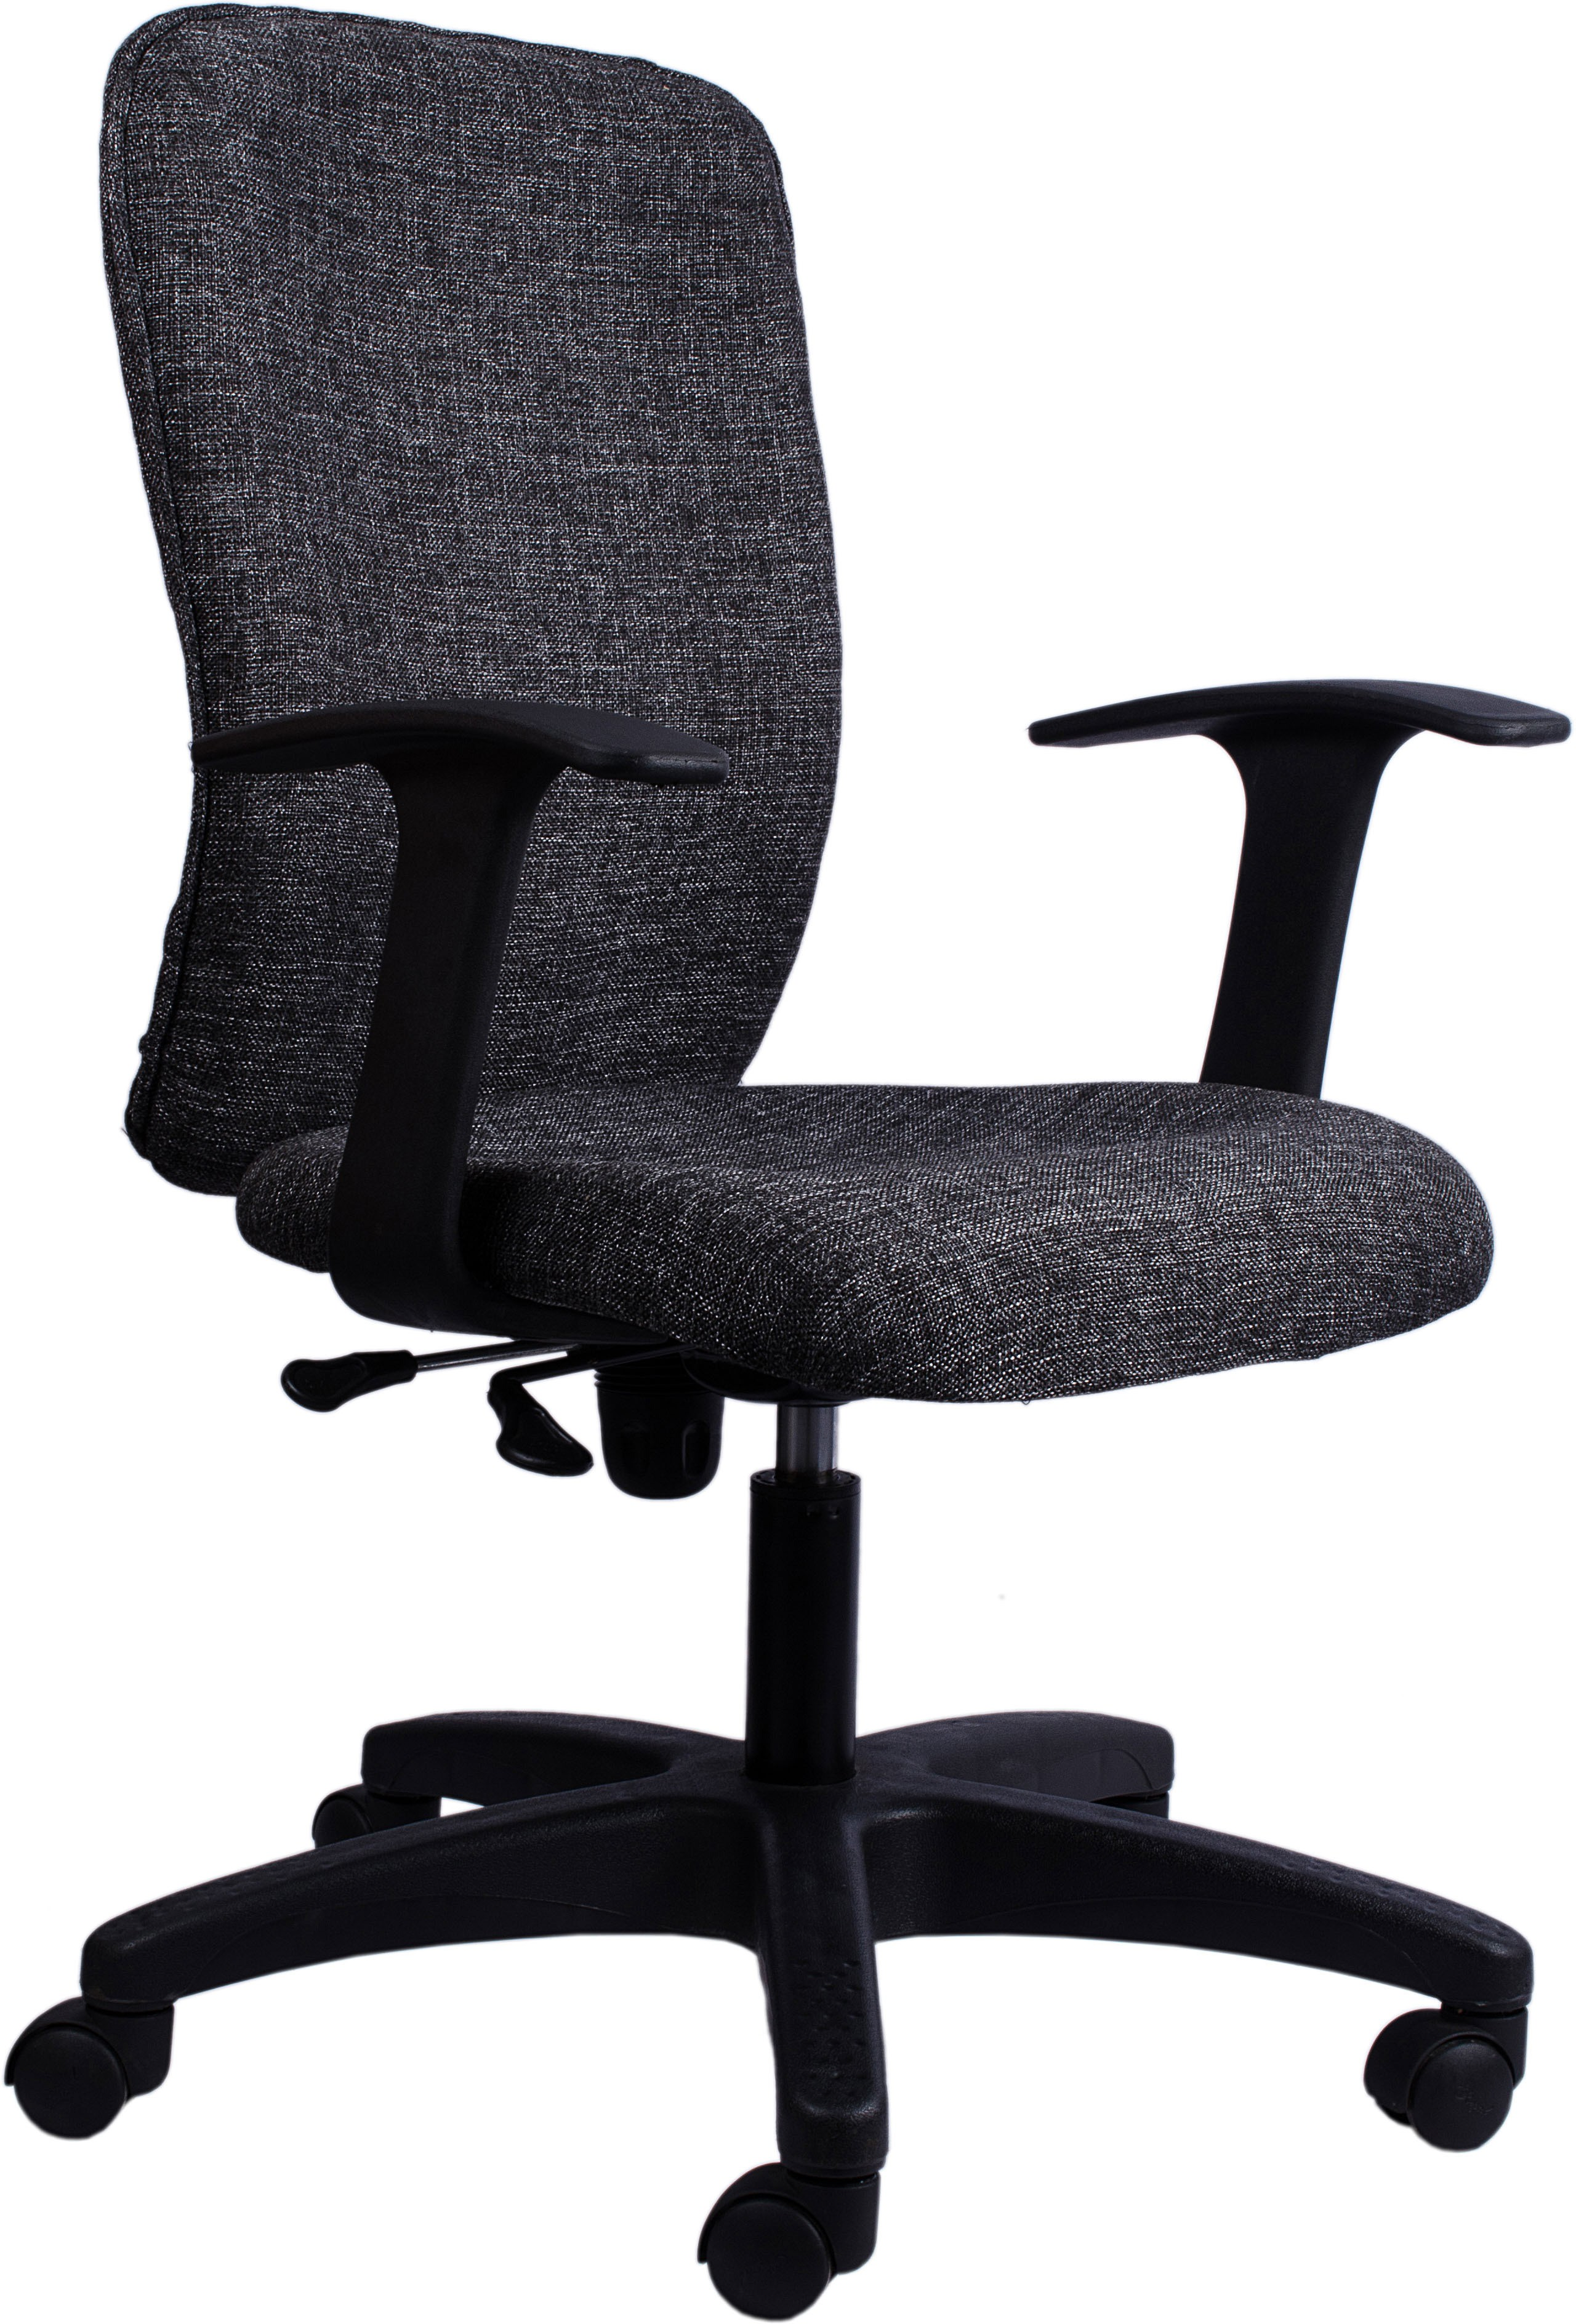 19 OFF on Hetal Enterprises Fabric Office Chair on Flipkart